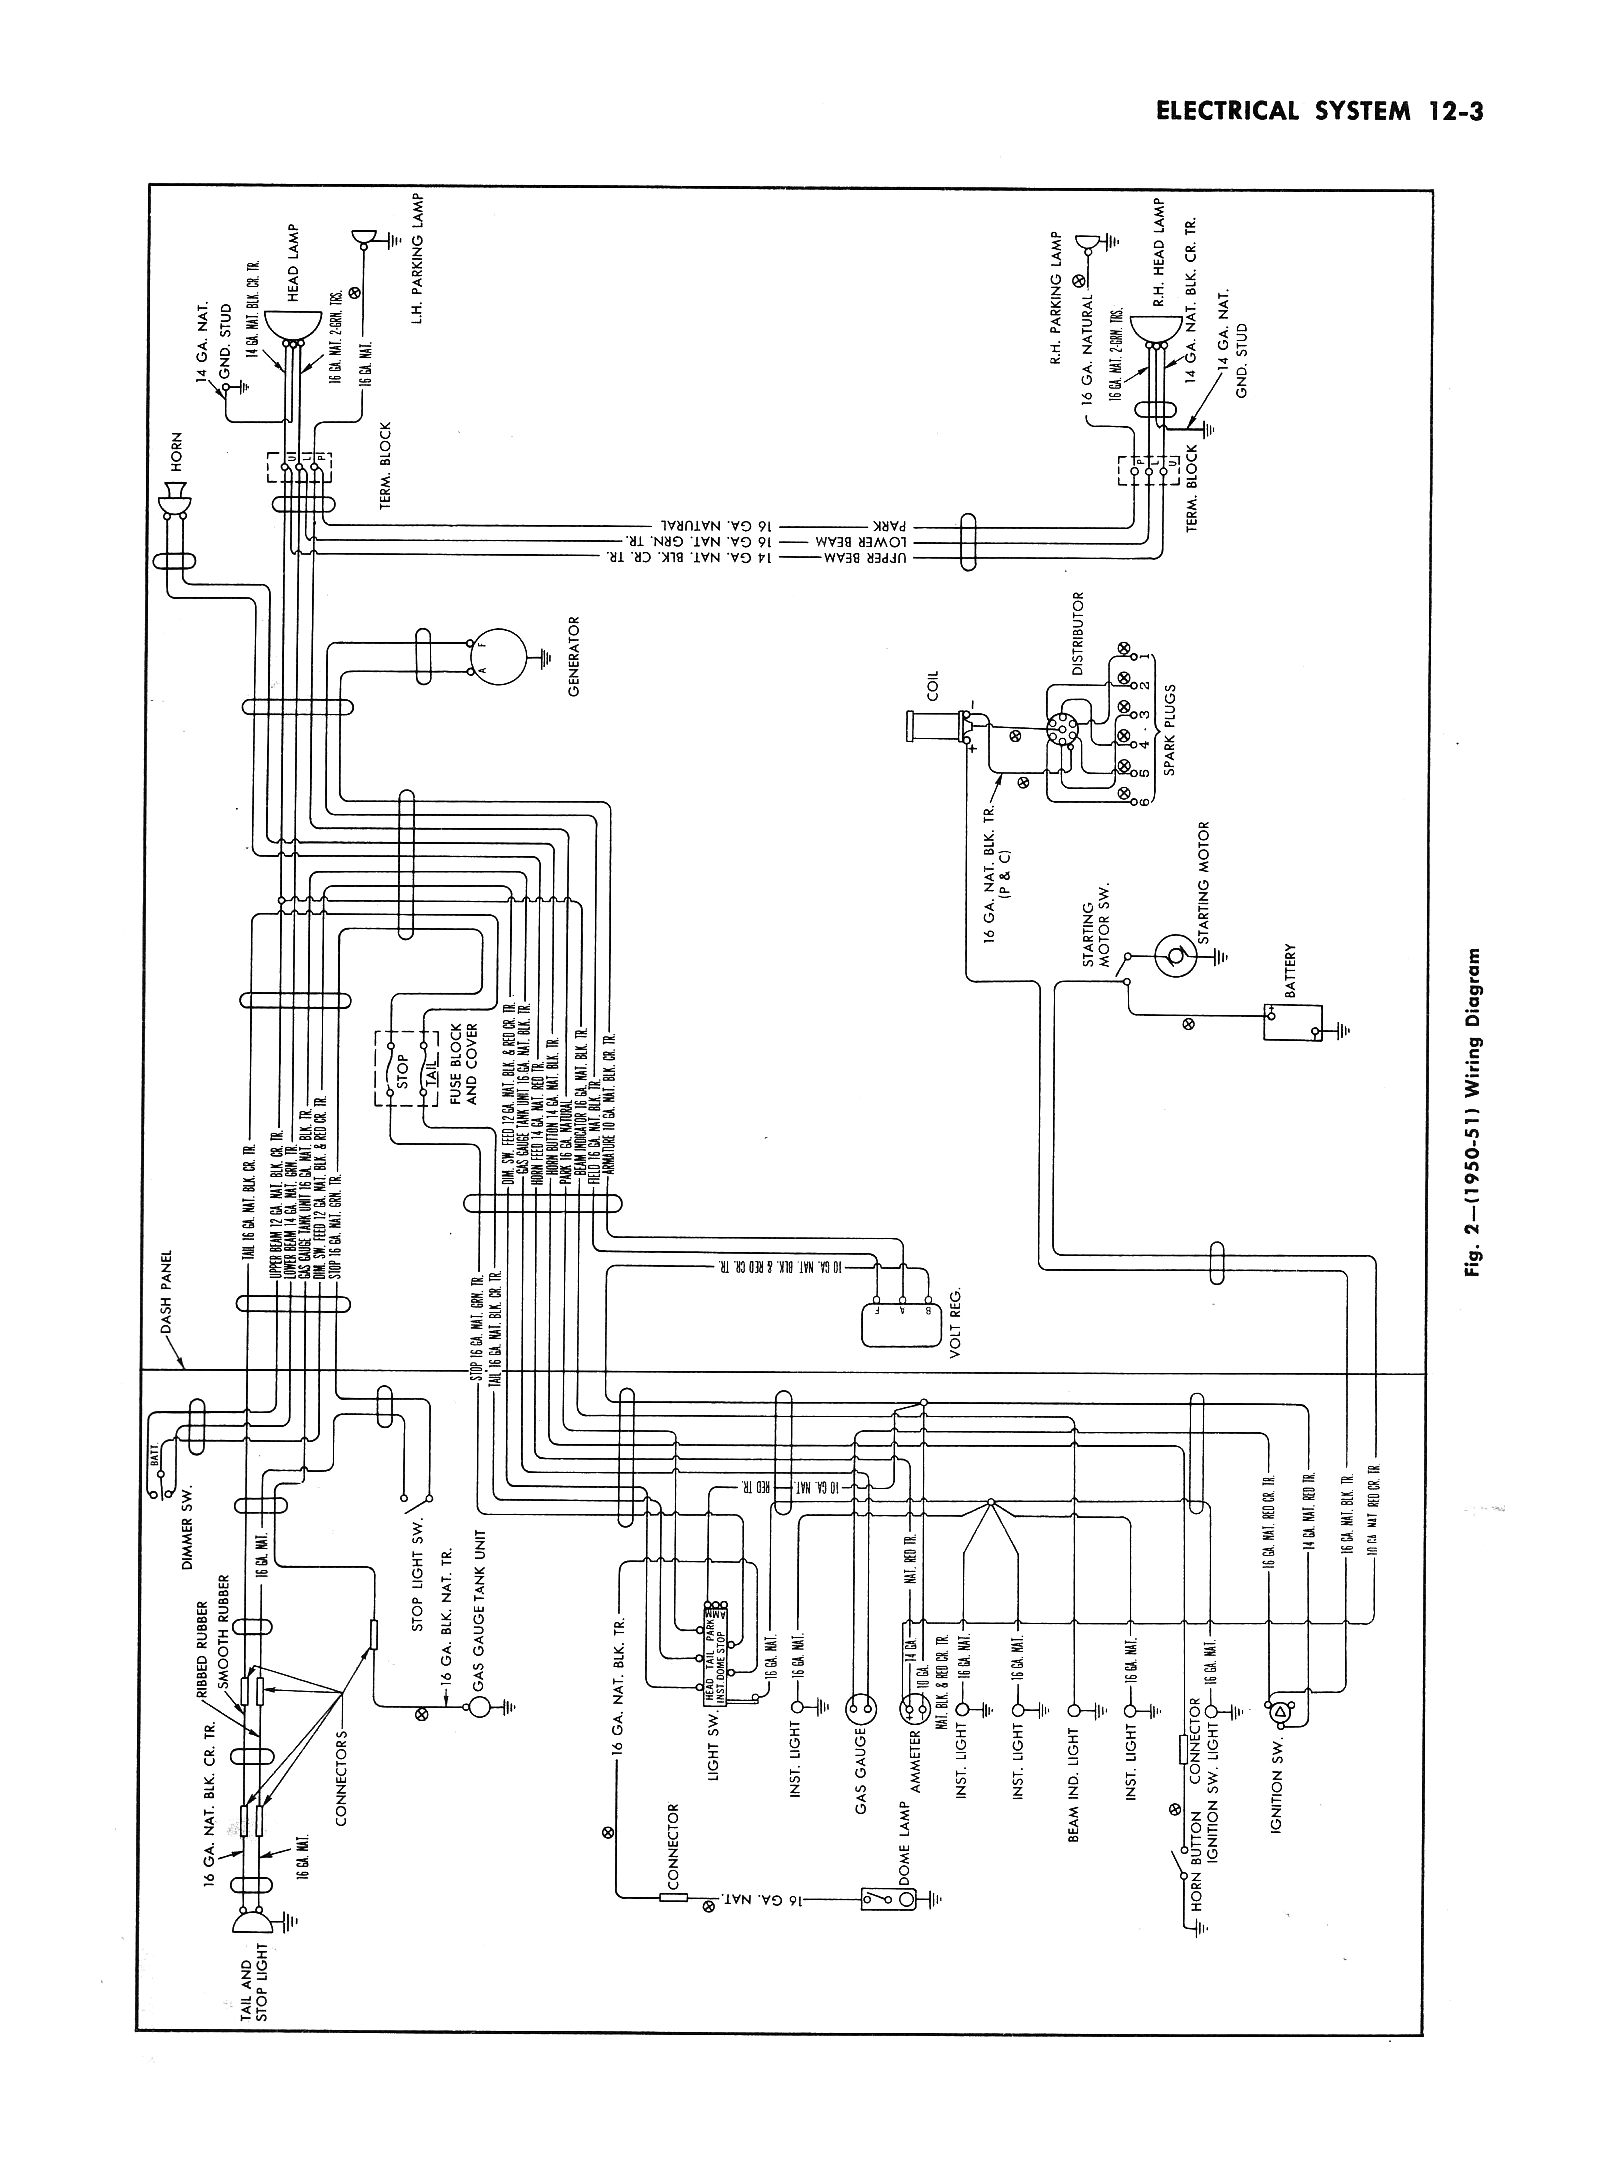 chevy headlight switch wiring diagram 39 47 chevy headlight switch diagram - wiring library • woofit.co